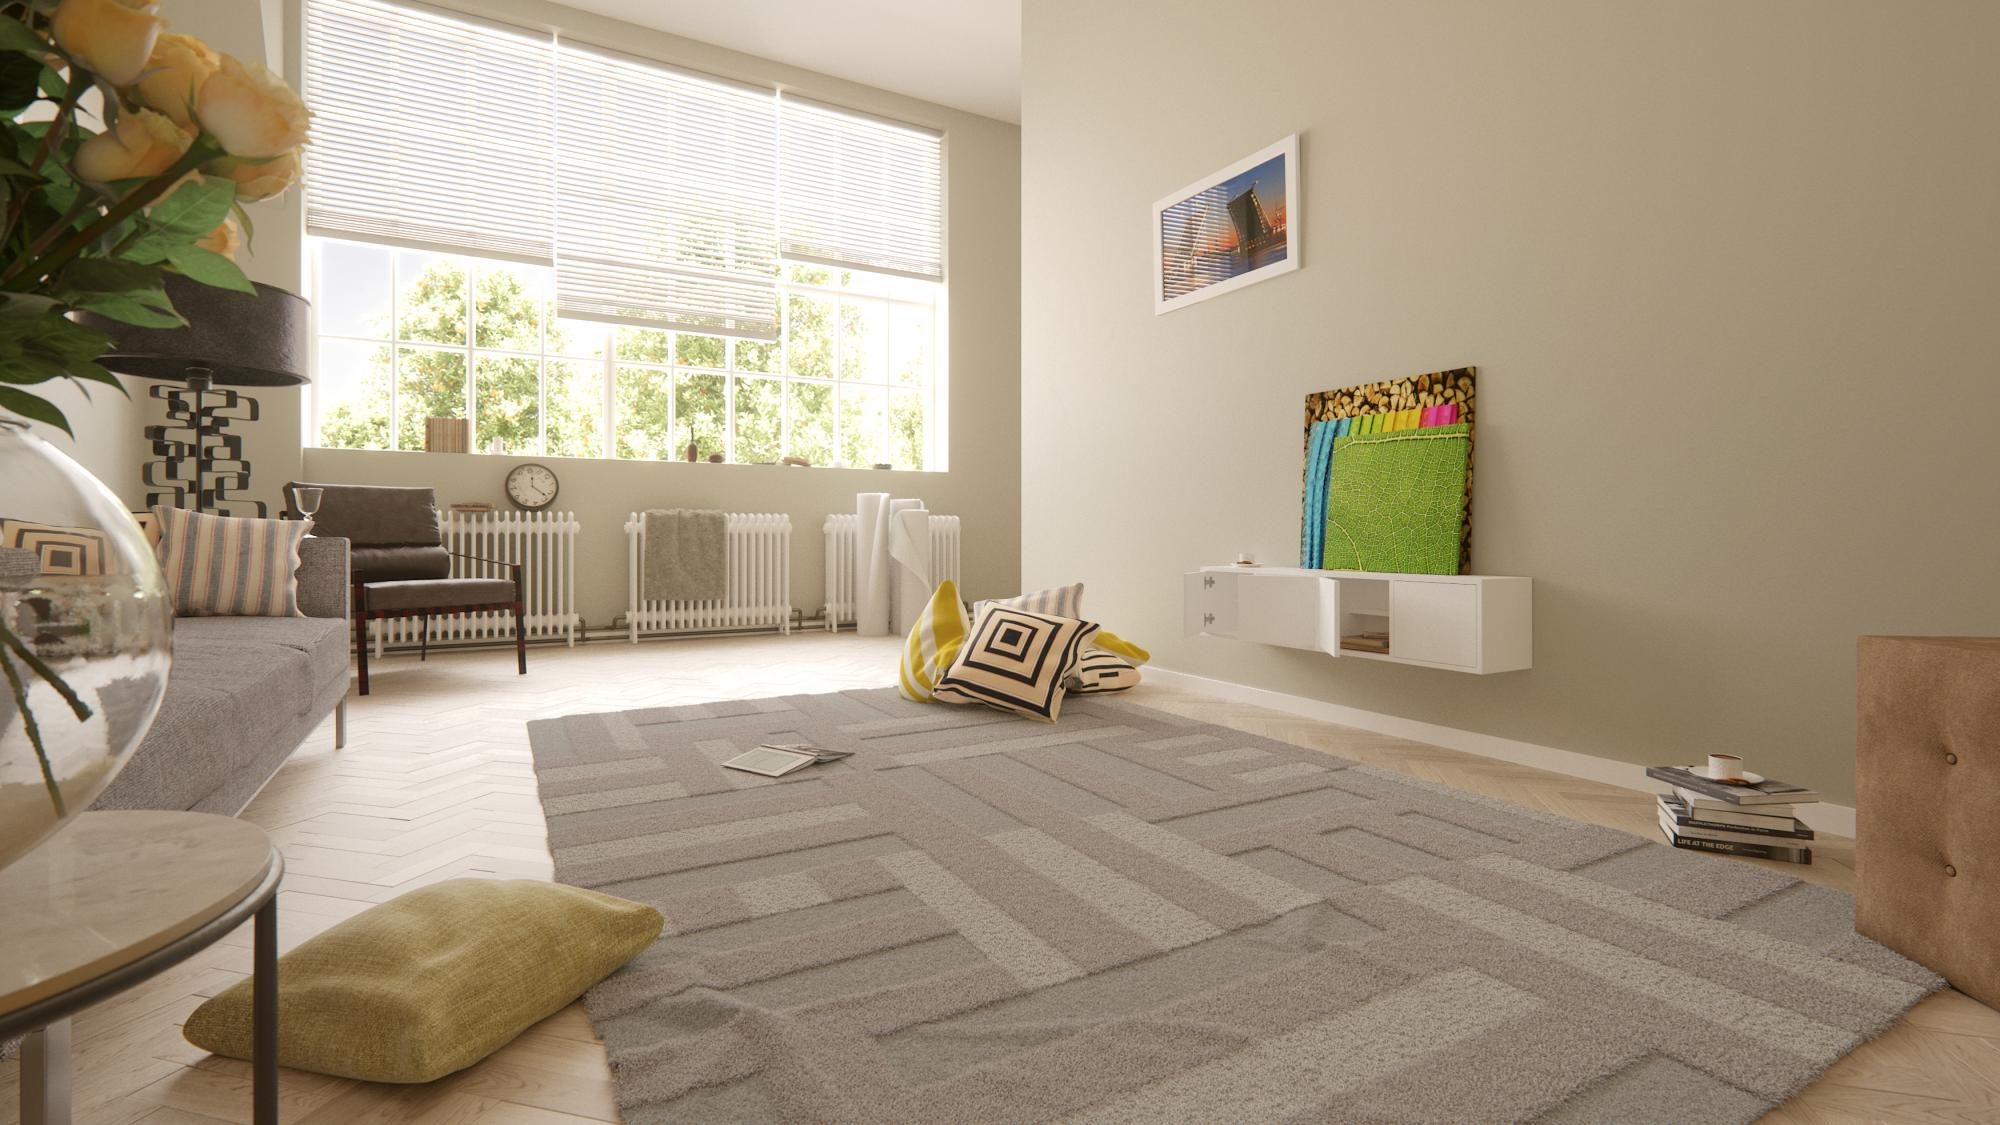 Creating Parquet Floors and Rugs for Interior Visualisations